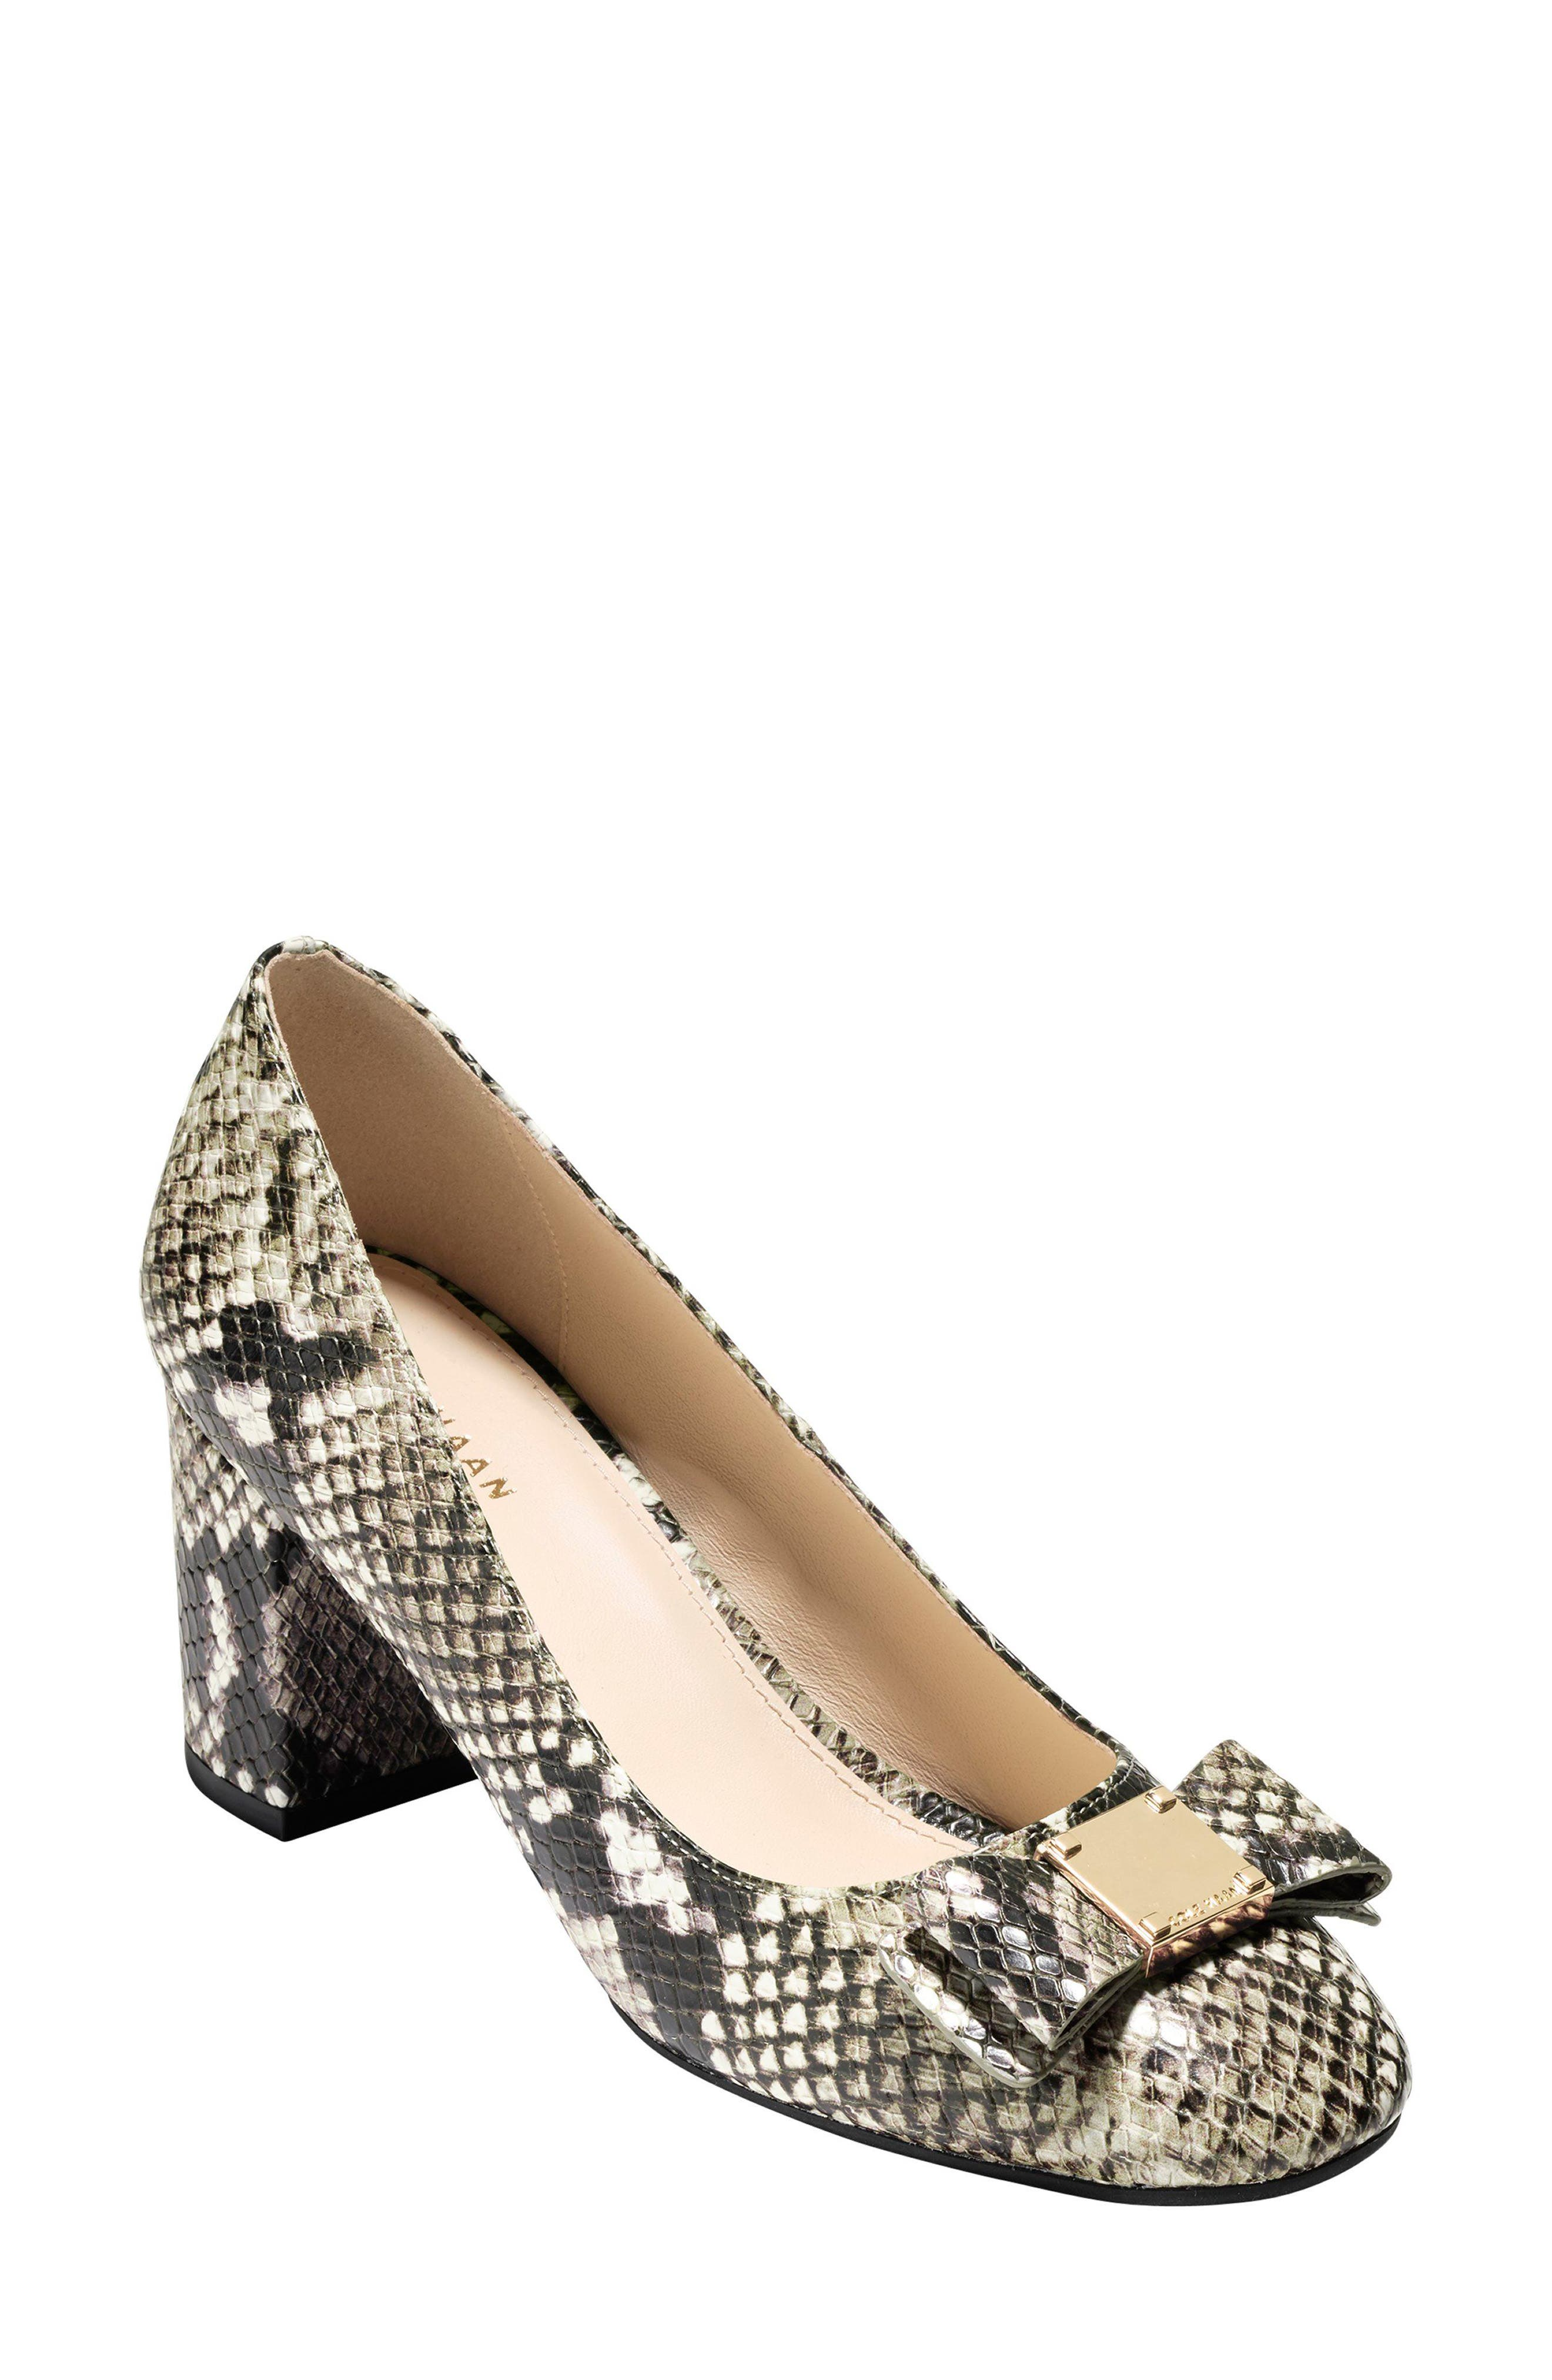 Tali Bow Pump,                         Main,                         color, Beige Snake Print Leather